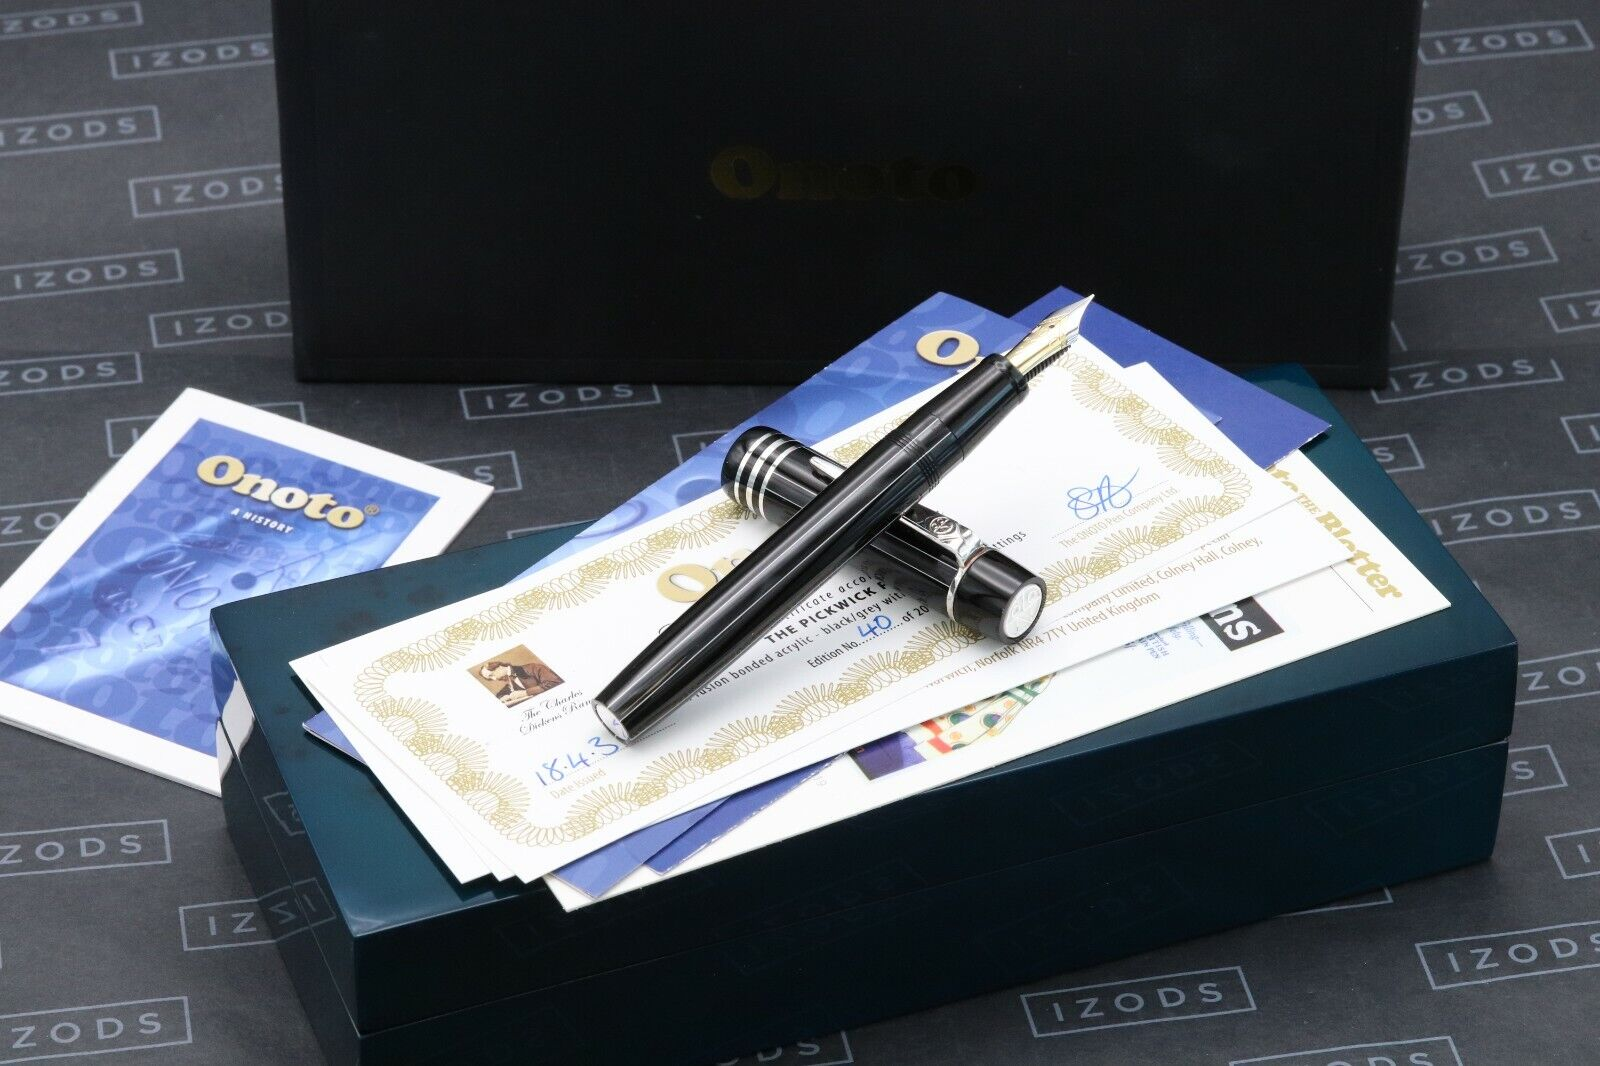 Onoto Magna Charles Dickens Pickwick Limited Edition Fountain Pen - UNUSED